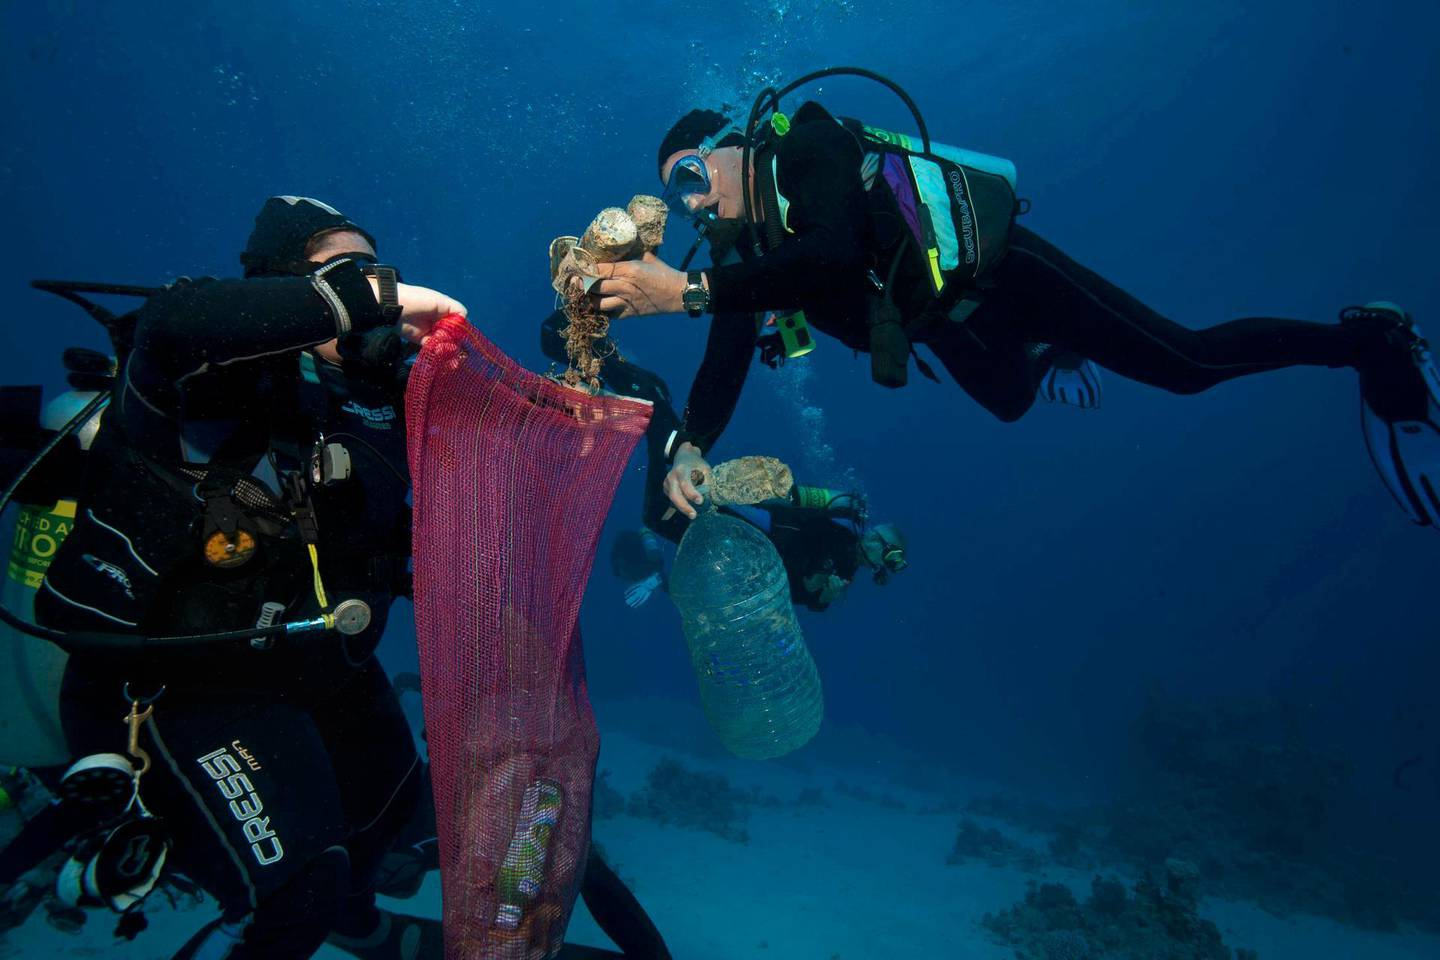 In this June 8, 2018 photo, divers collect plastic and other debris during a cleanup organized by Camel Dive Club, at a dive site off the coast of the Red Sea resort of Sharm el Sheik, in Southern Sinai, Egypt. An Egyptian official says his Red Sea province will impose a ban on disposable plastics, prohibiting everything from single use straws to plastic bags in an effort to fight plastic pollution. Ahmed Abdallah, governor of Hurghada province, said late on Tuesday, April, 2, 2019, that the ban will go into effect from June. (AP Photo/Thomas Hartwell,)